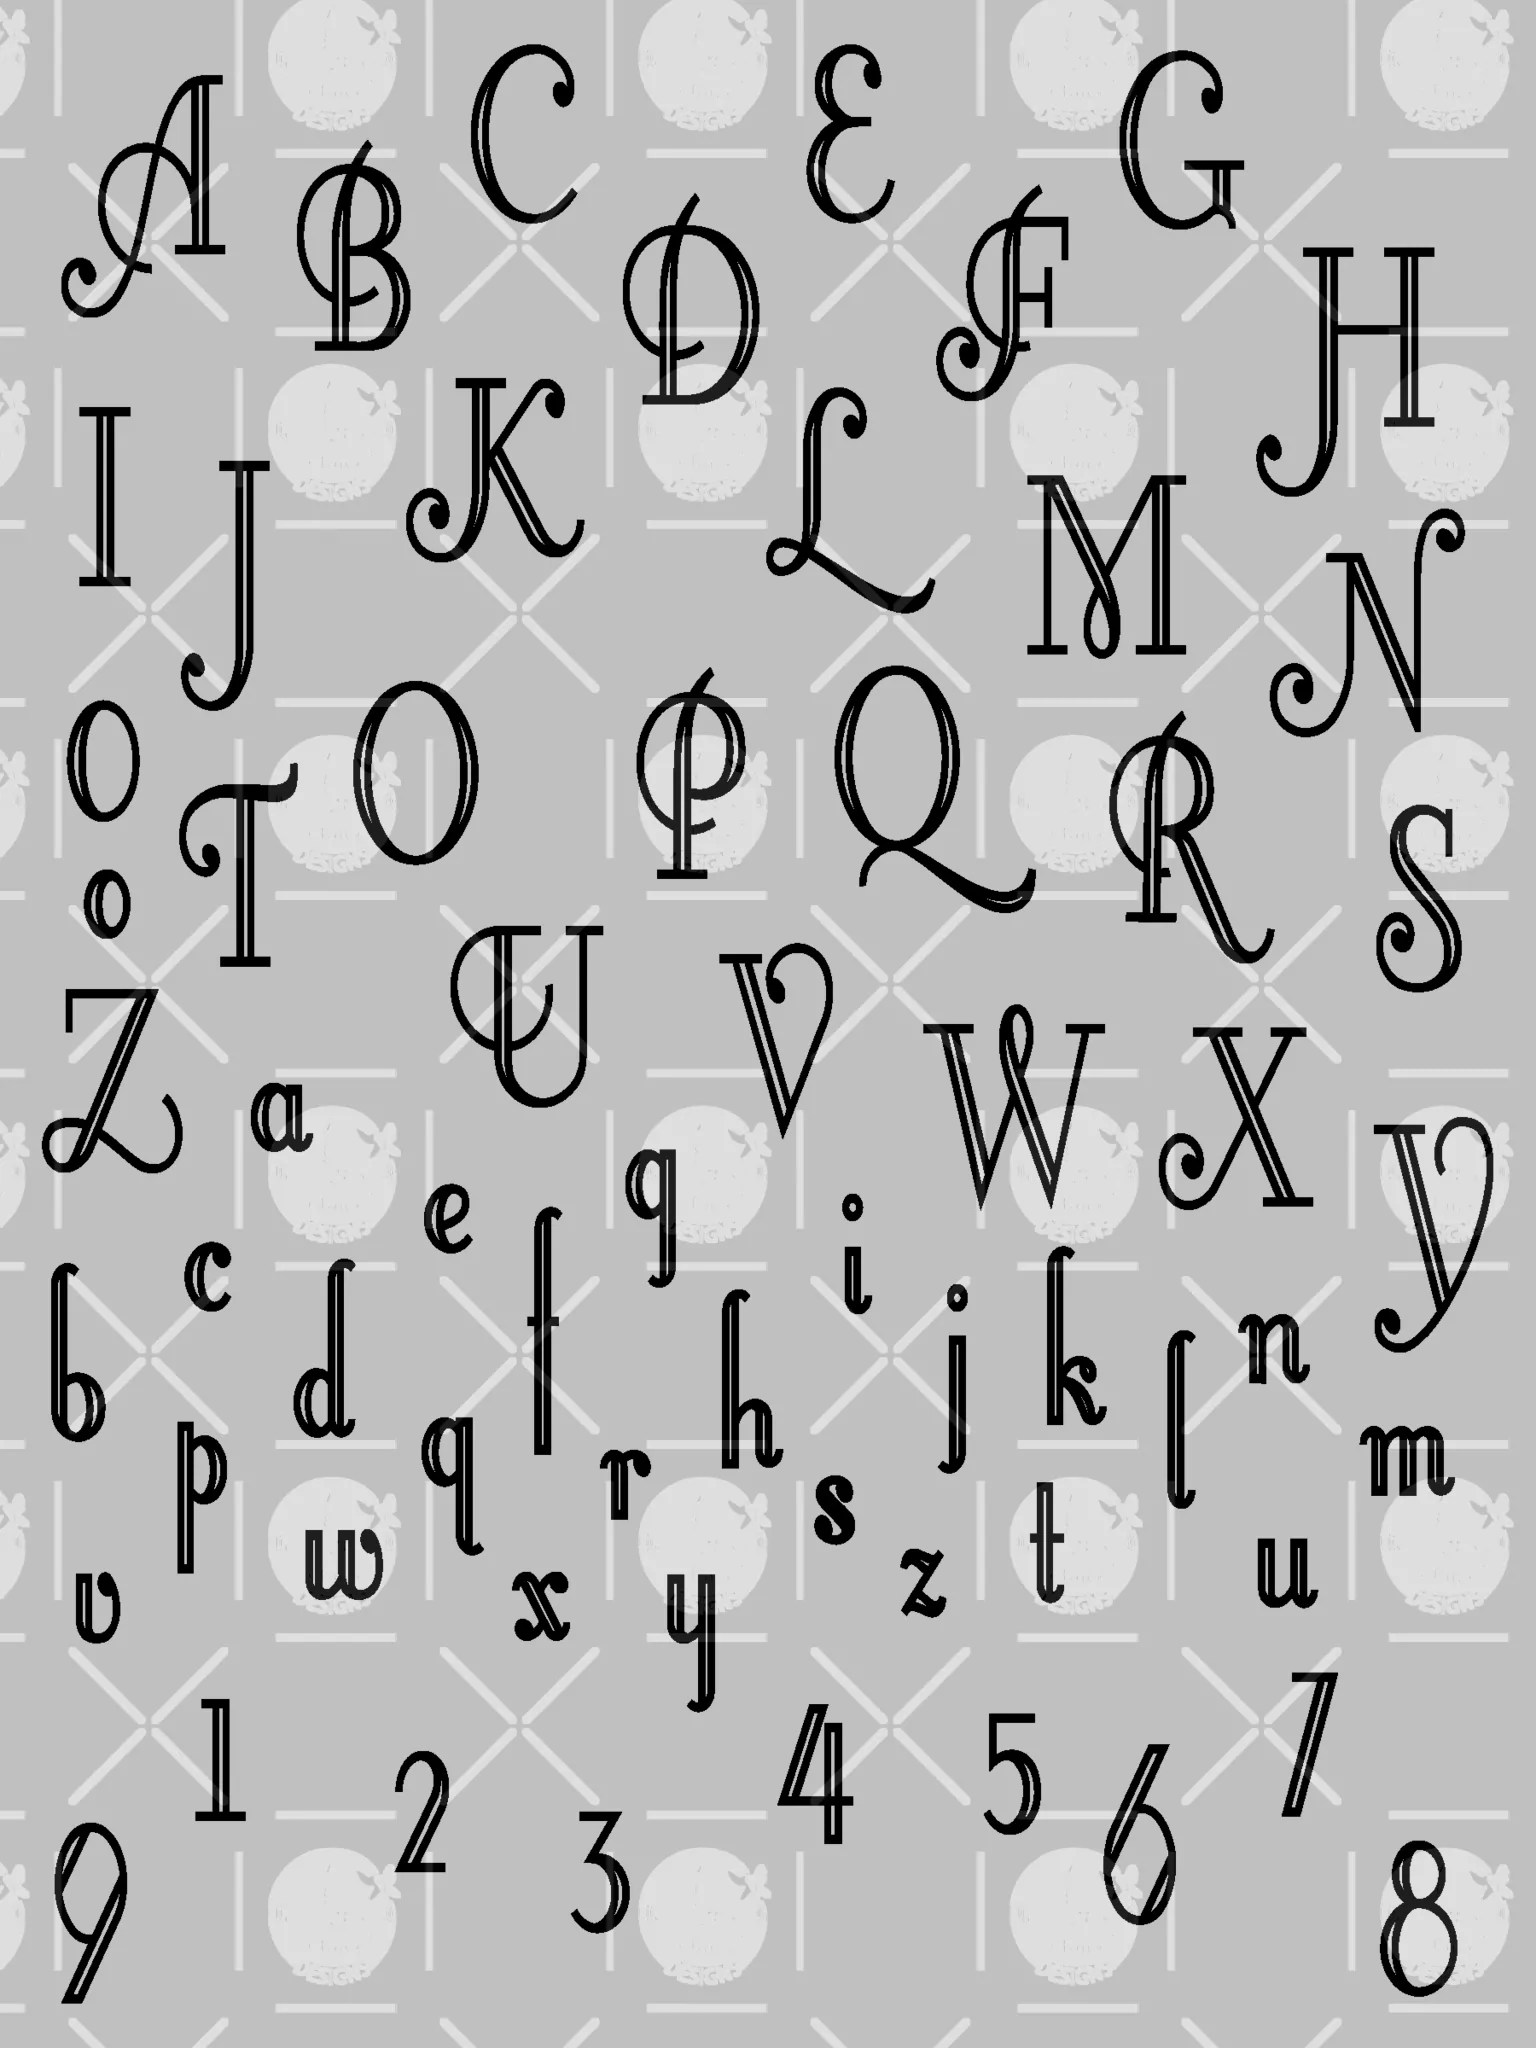 Fancy Letters And Numbers : fancy, letters, numbers, Fancy, Letters